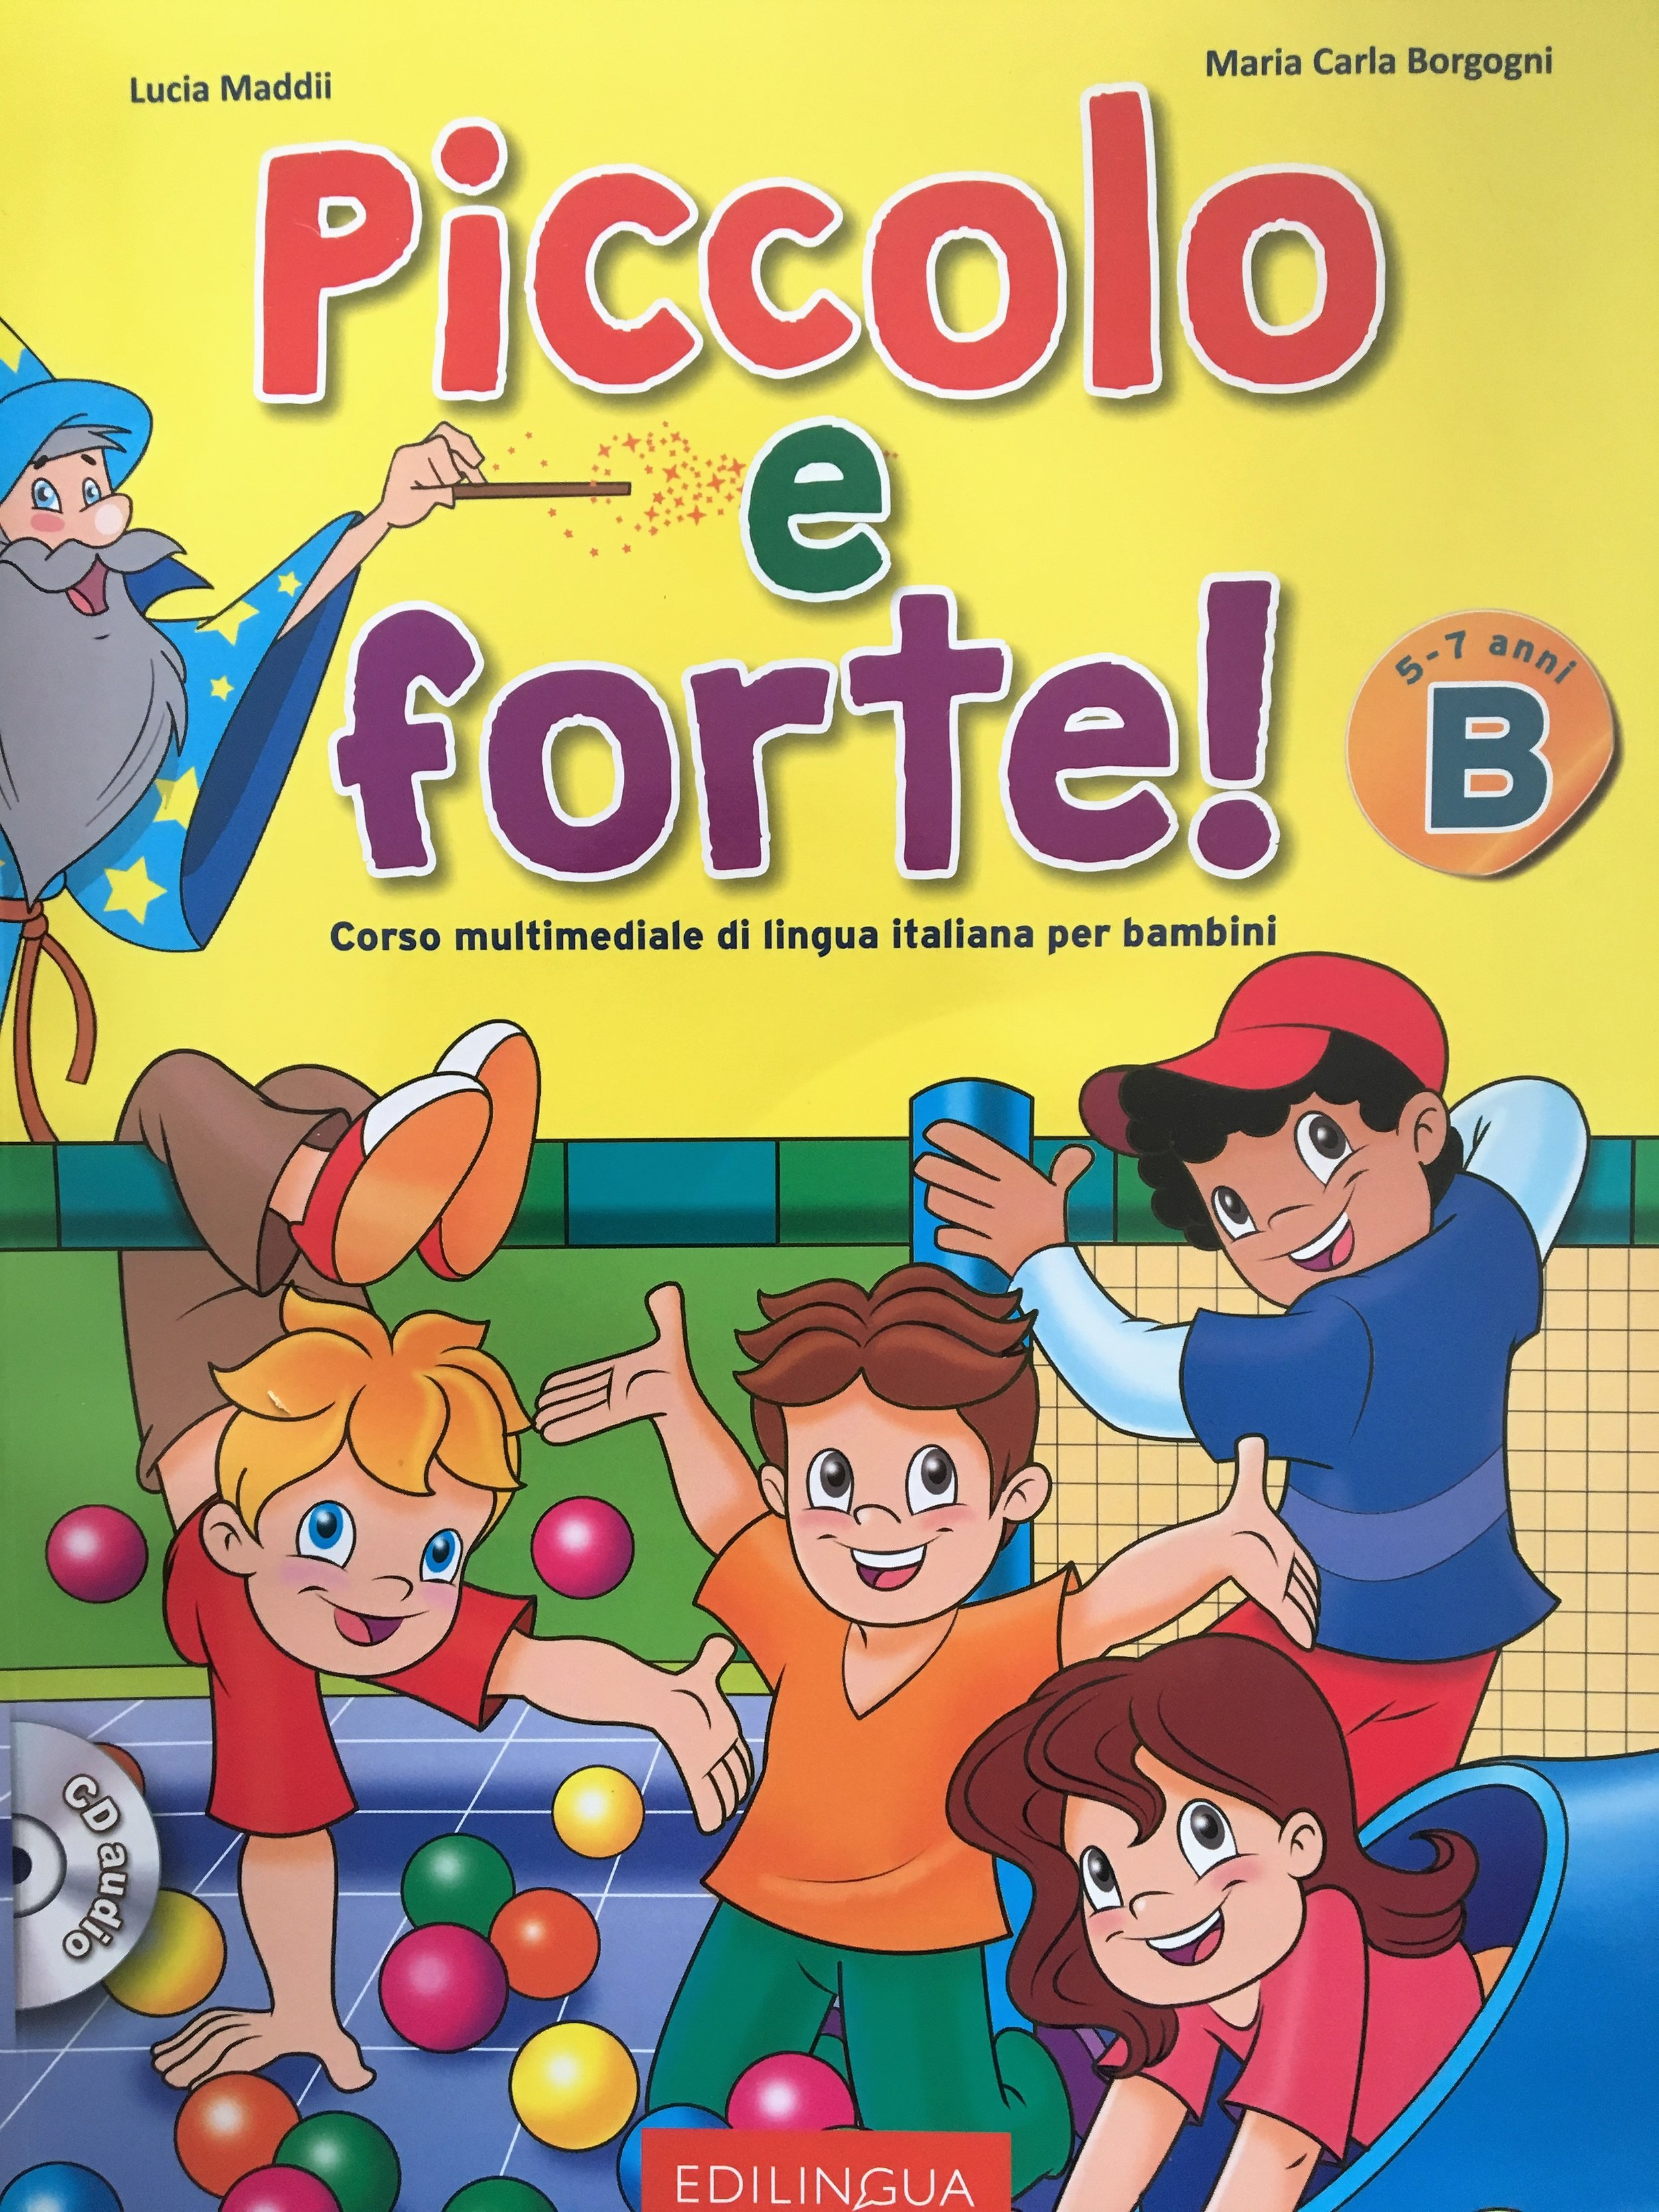 ITALIAN COURSE FOR CHILDREN 5-7 YEARS OLD